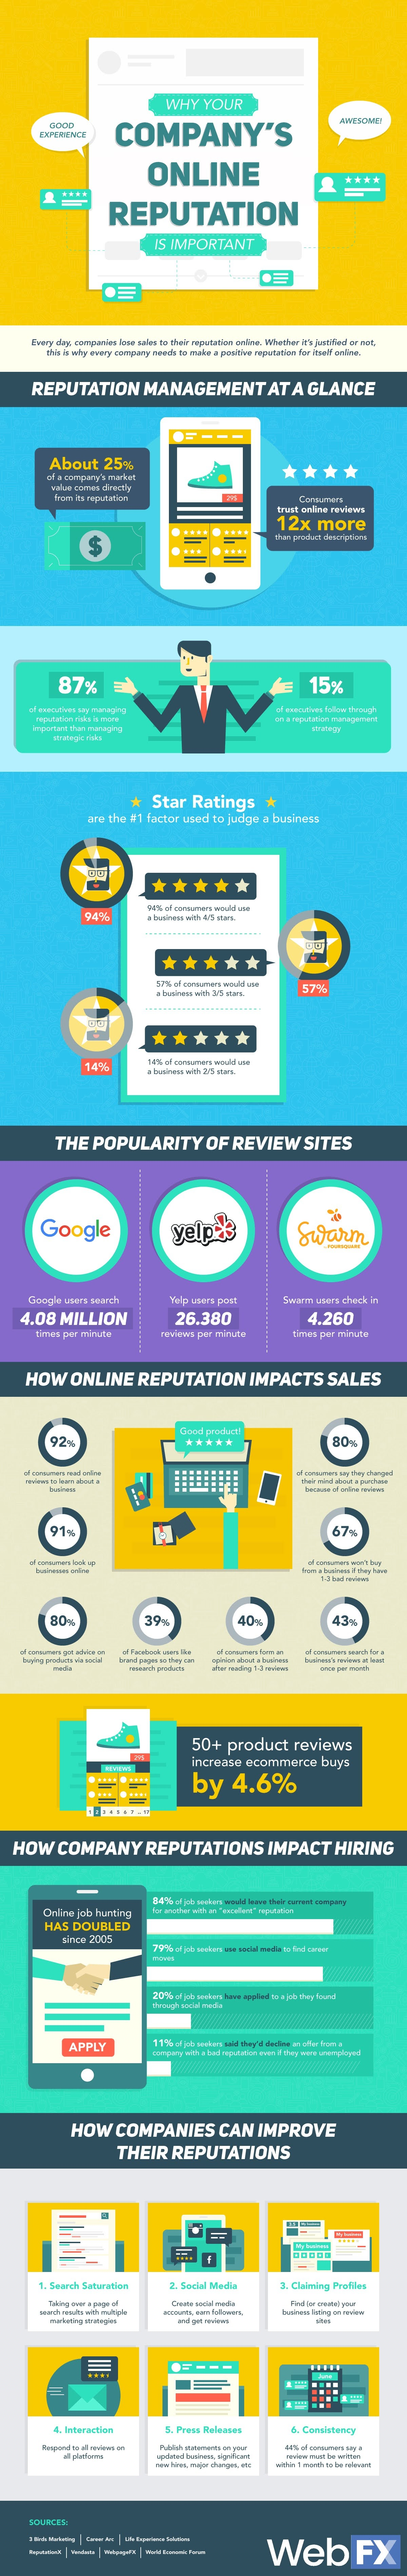 why-your-companys-online-reputation-matters-infographic